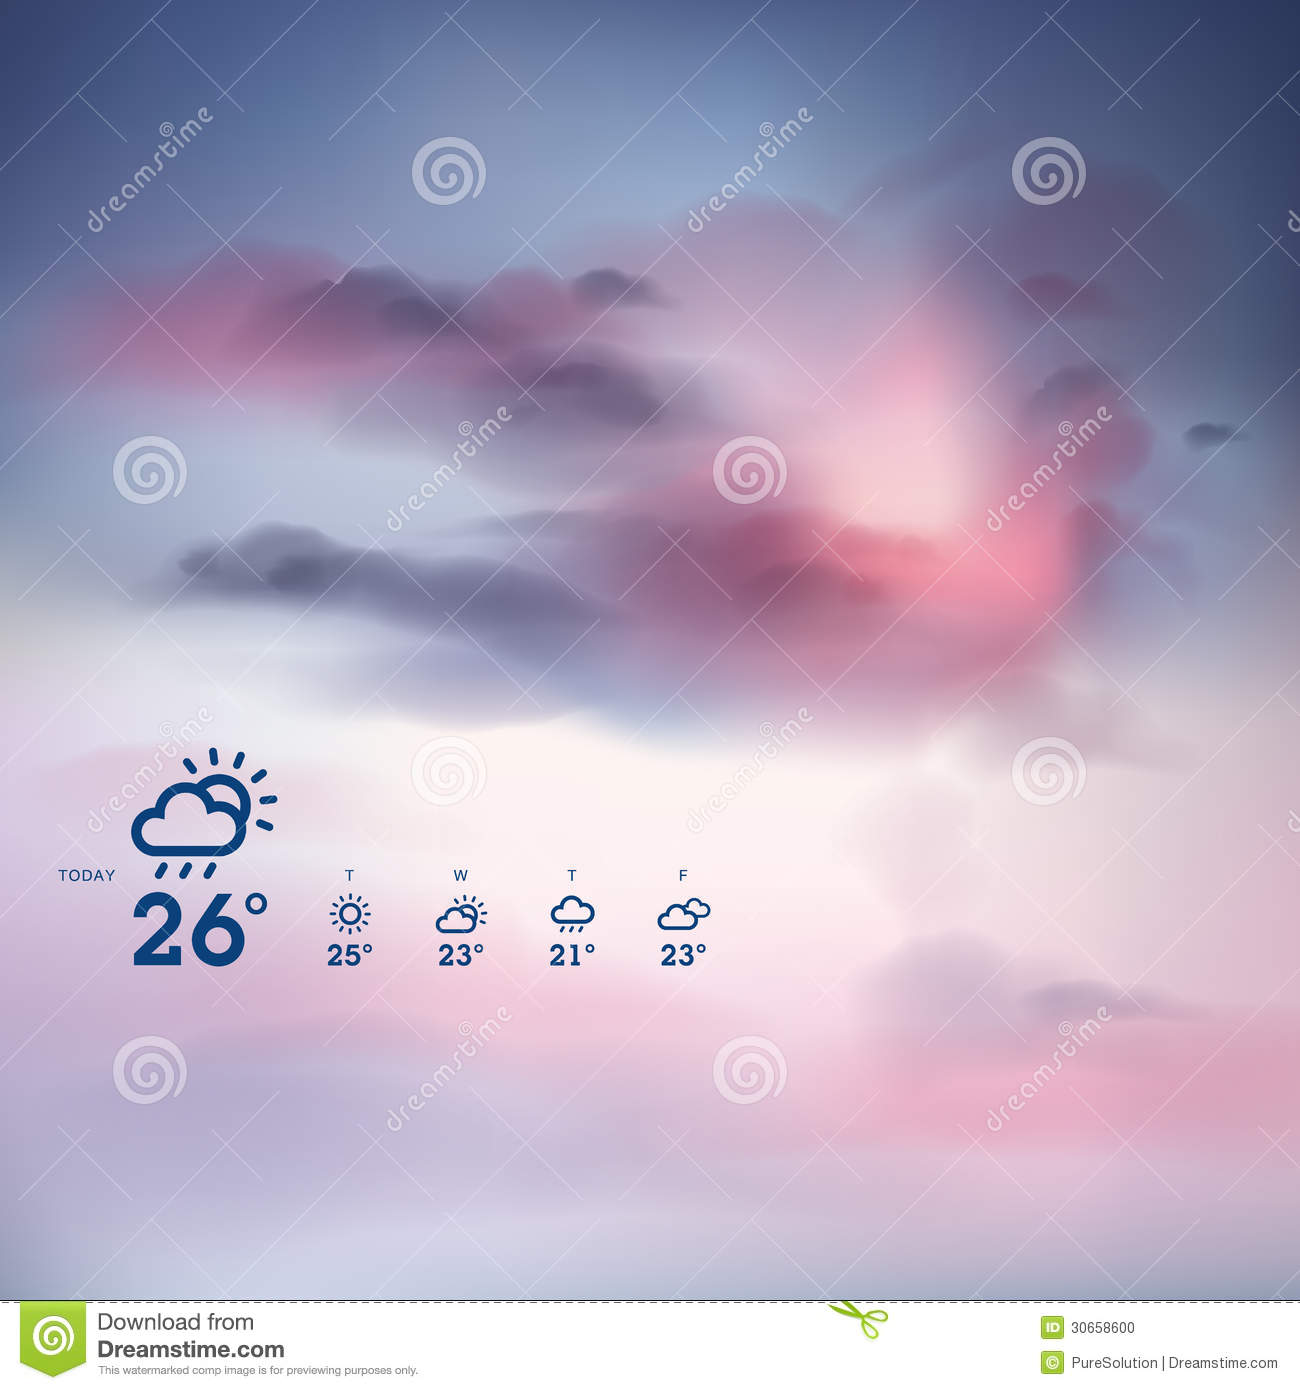 weather forecast template stock photo